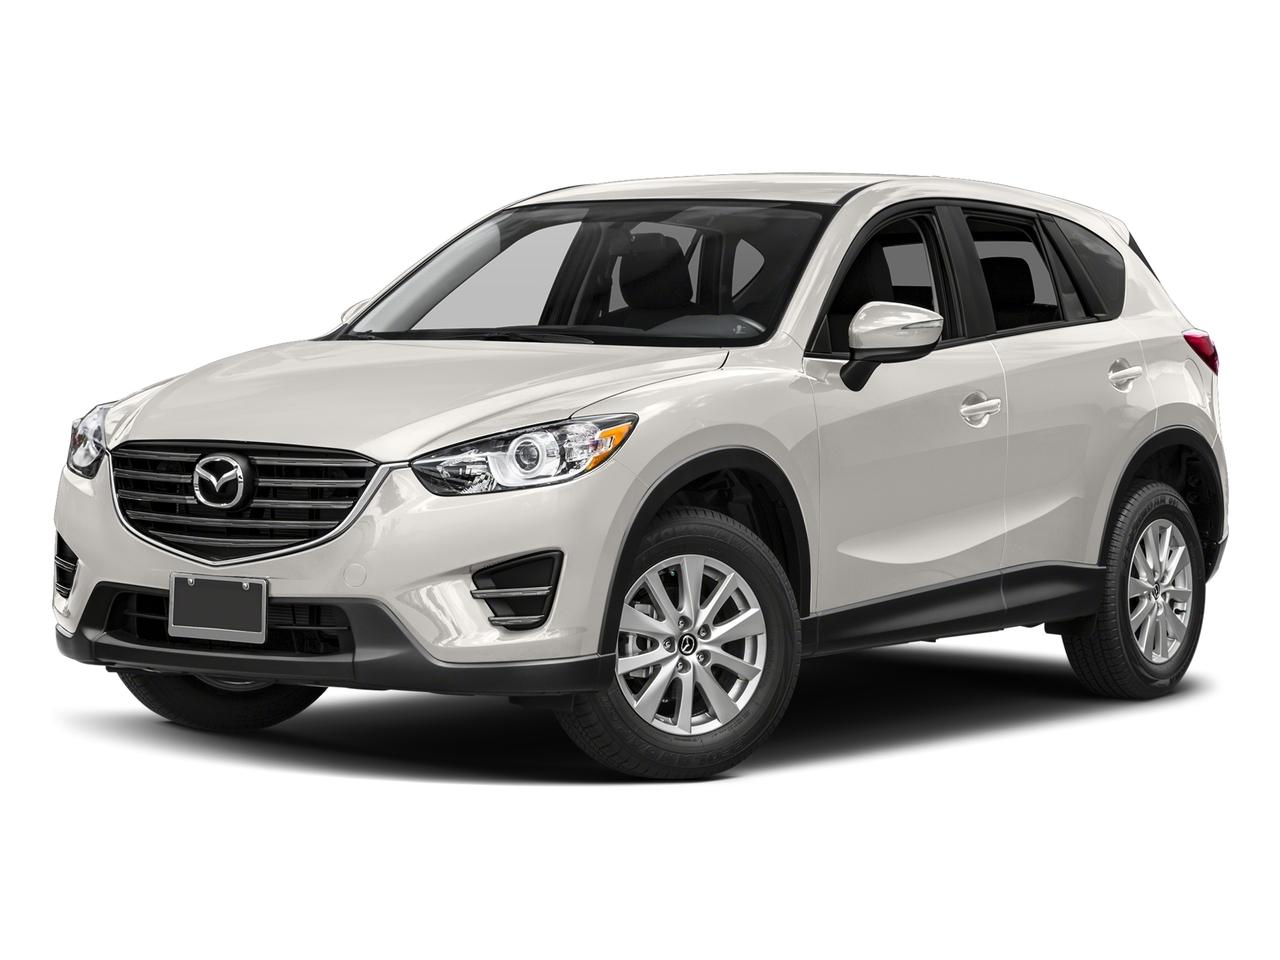 2016 Mazda CX-5 Vehicle Photo in Stafford, TX 77477